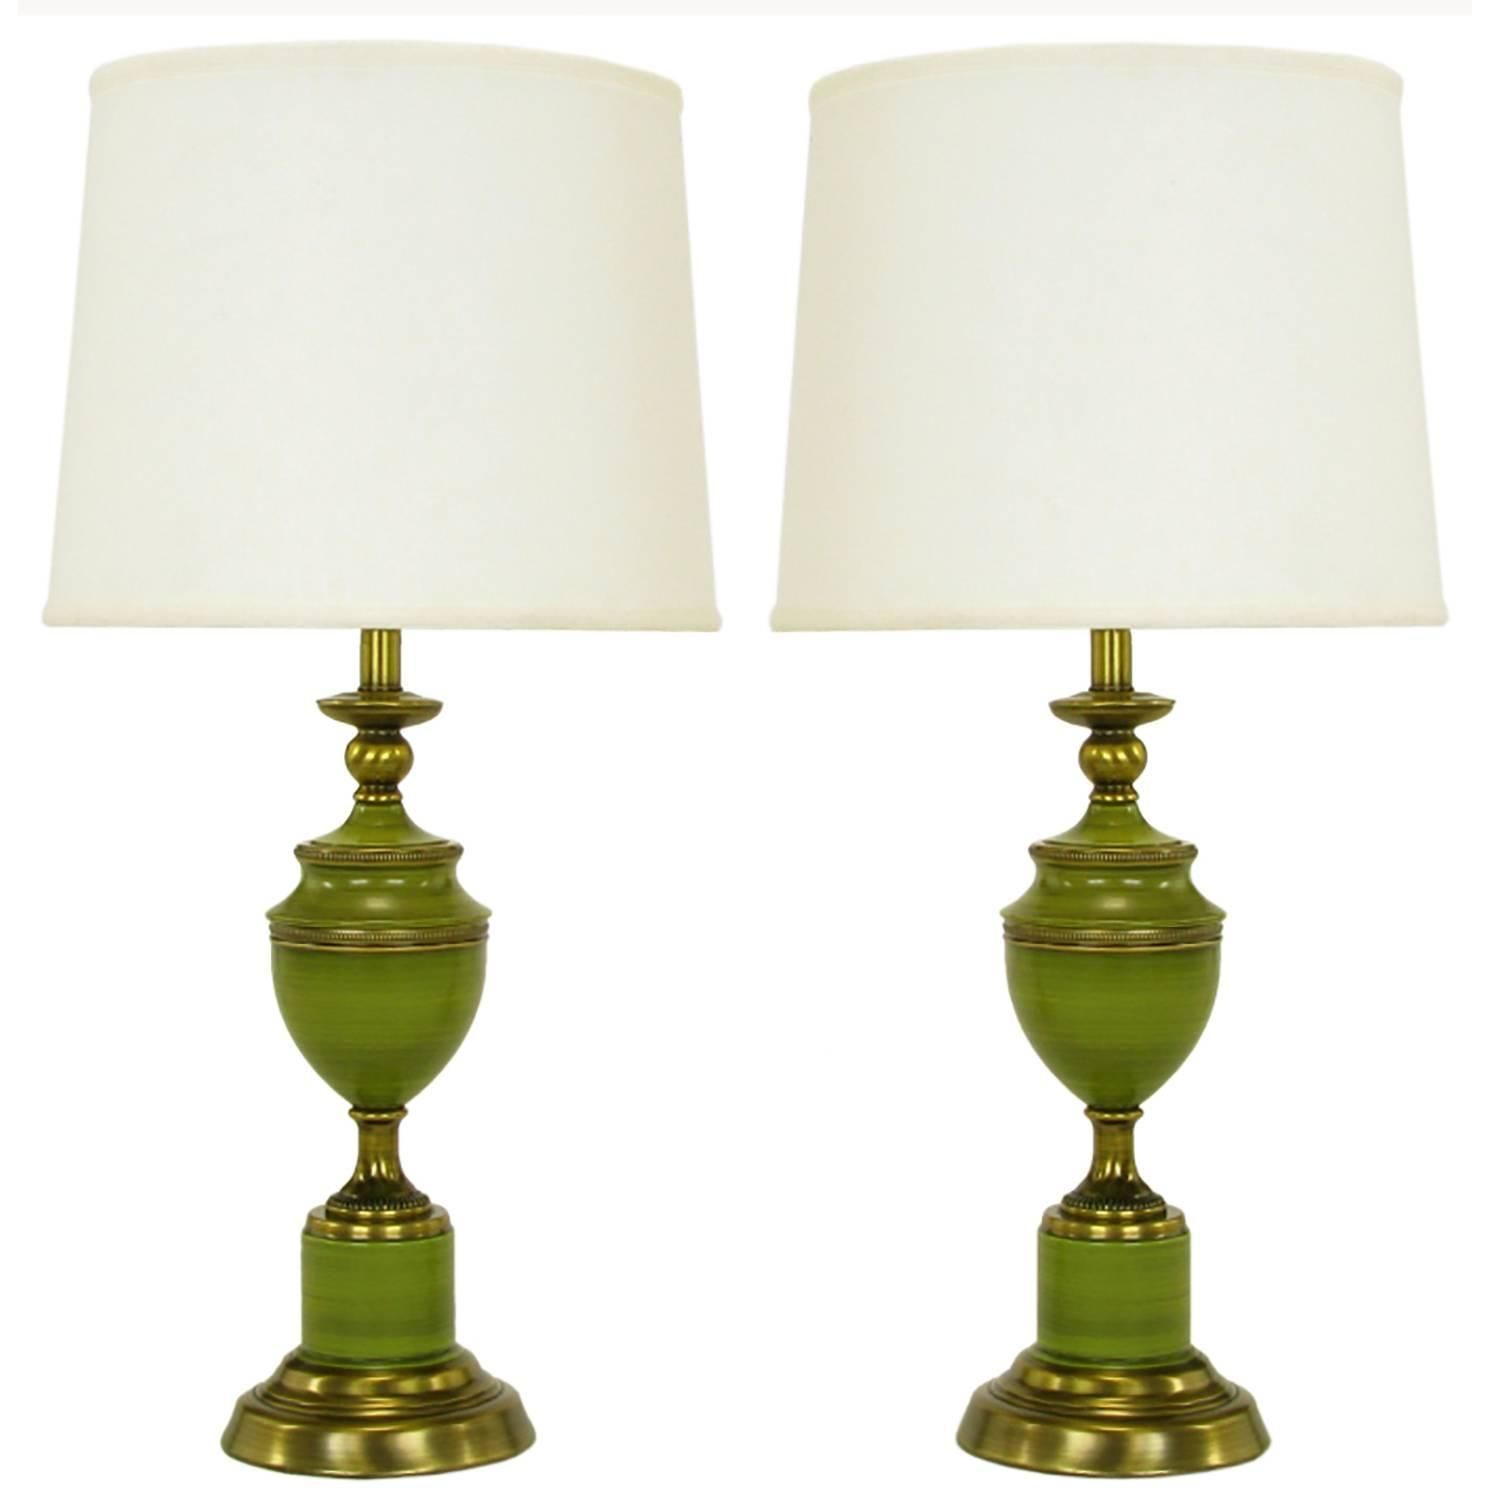 Pair Of Rembrandt Lamps Antiqued Brass U0026 Green Lacquer Empire Style Table  Lamps